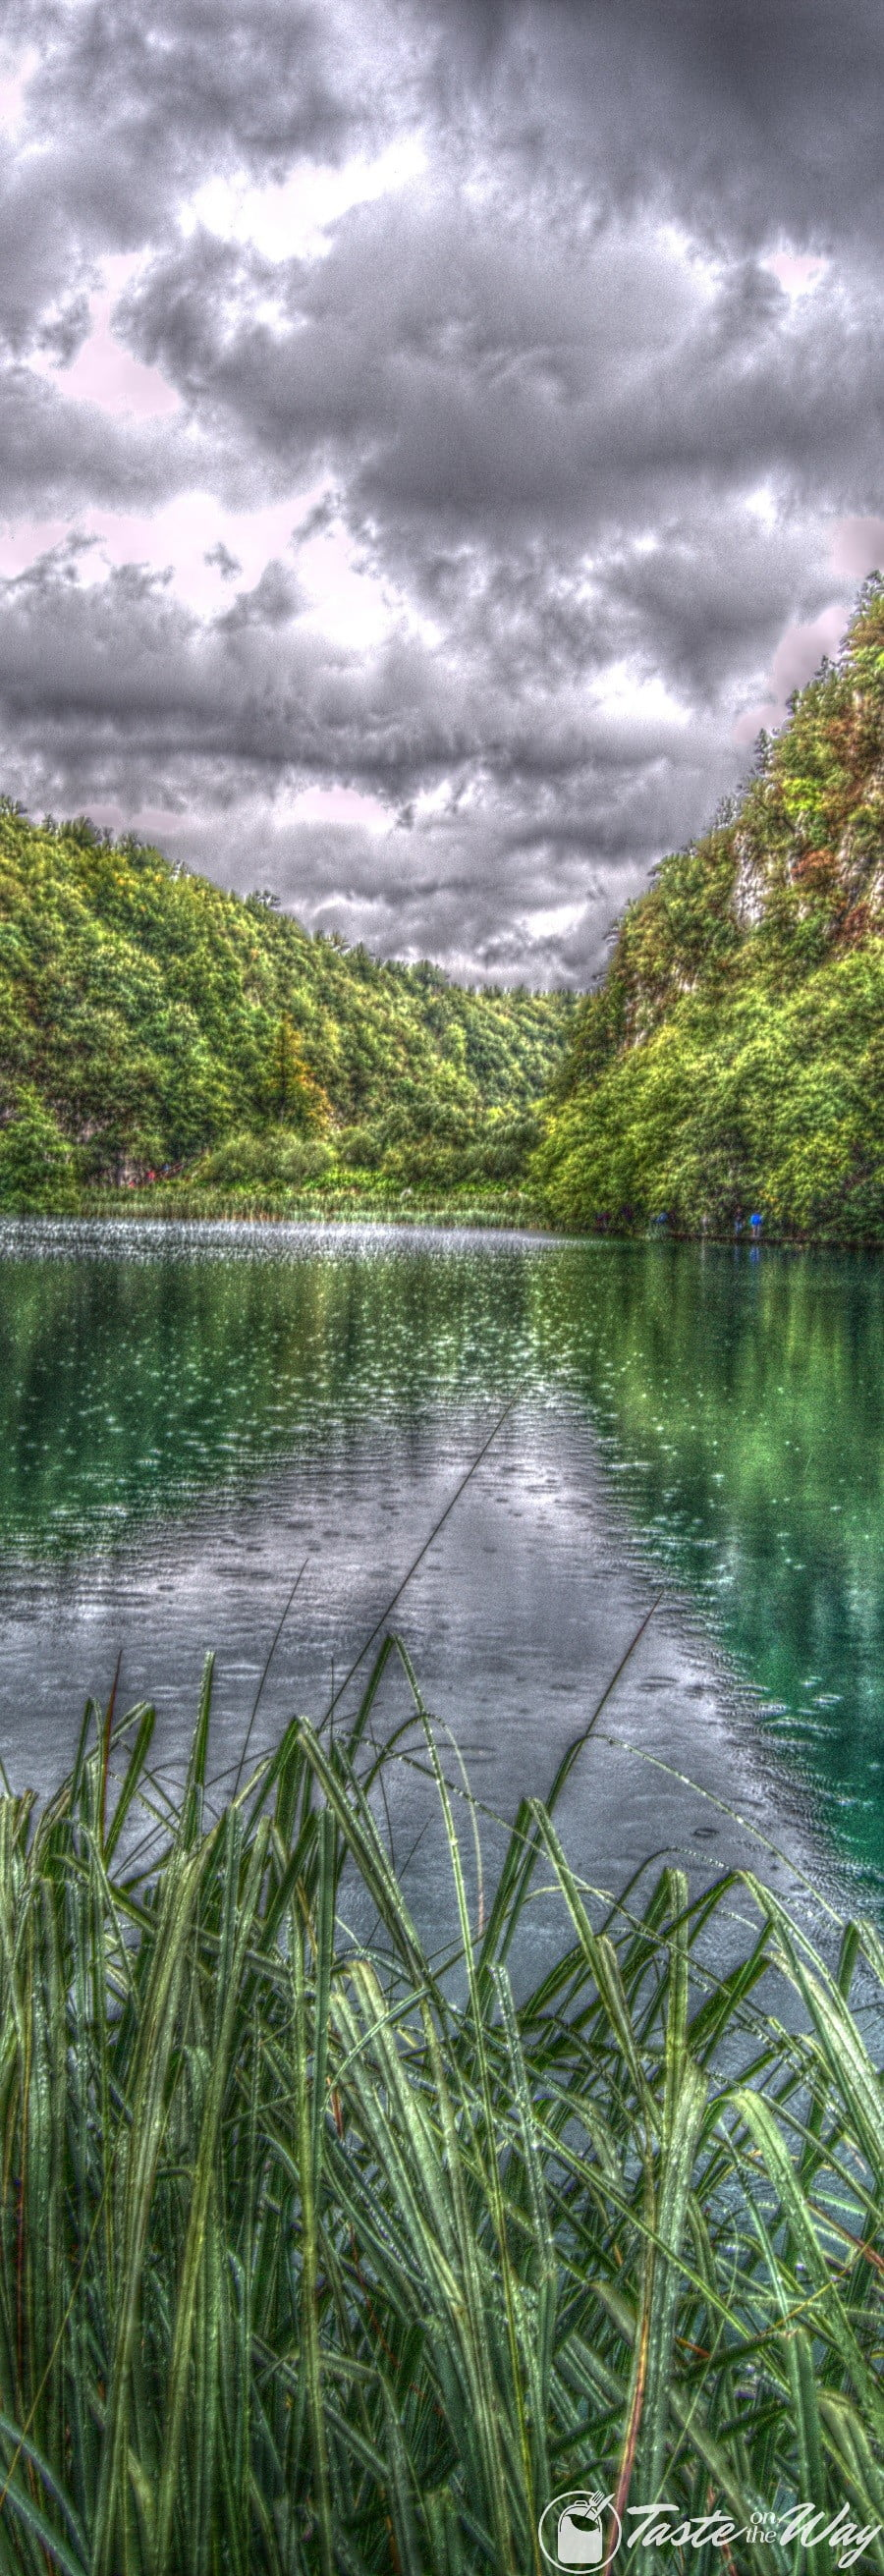 Check out these amazing pictures of Plitvice lakes in #Croatia - it's captivating! #travel #photography #hdr @tasteontheway